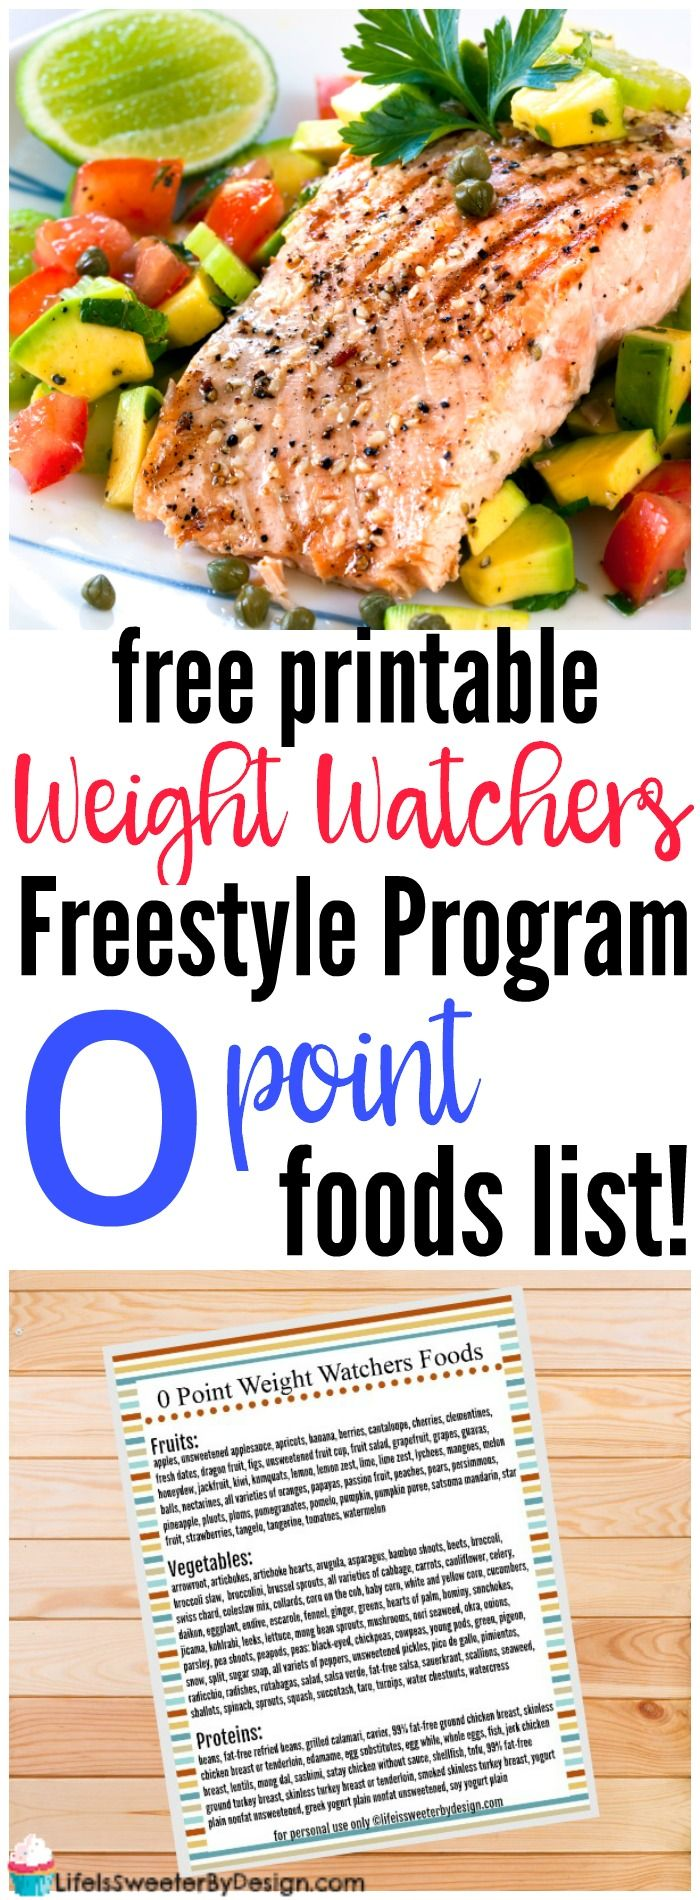 weight watchers zero point foods list free printable for. Black Bedroom Furniture Sets. Home Design Ideas